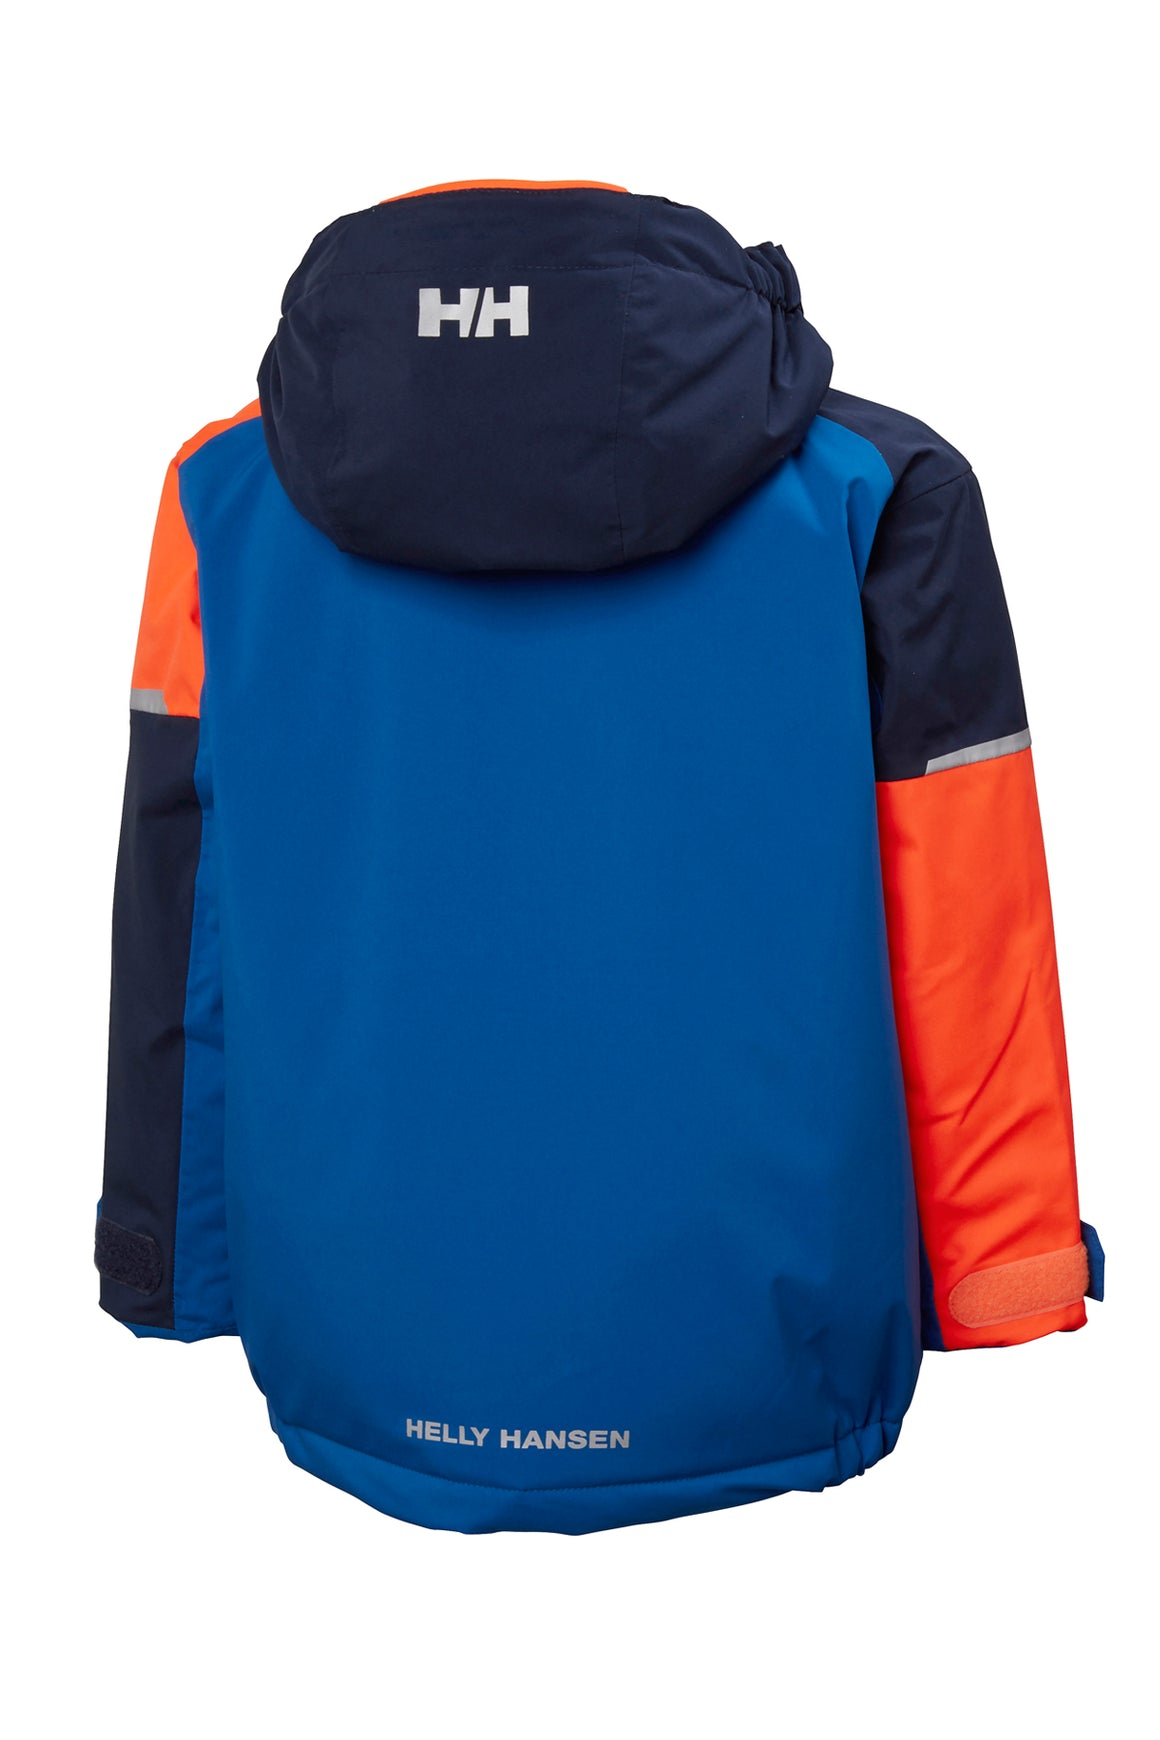 Helly Hansen Rider Ski Jacket - Evening Blue